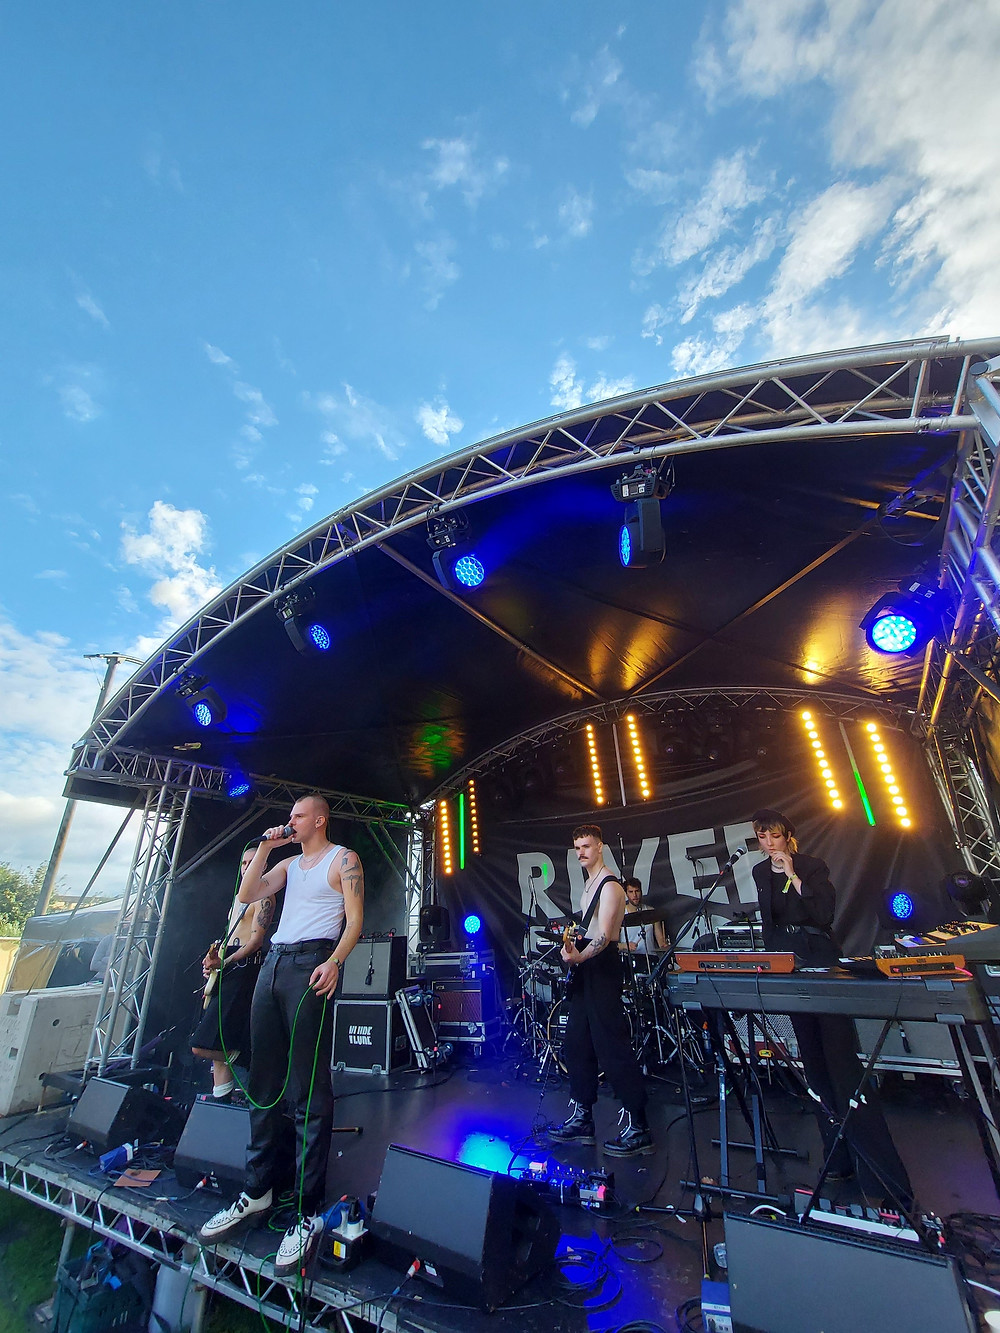 Glasgow band Vlure live on stage